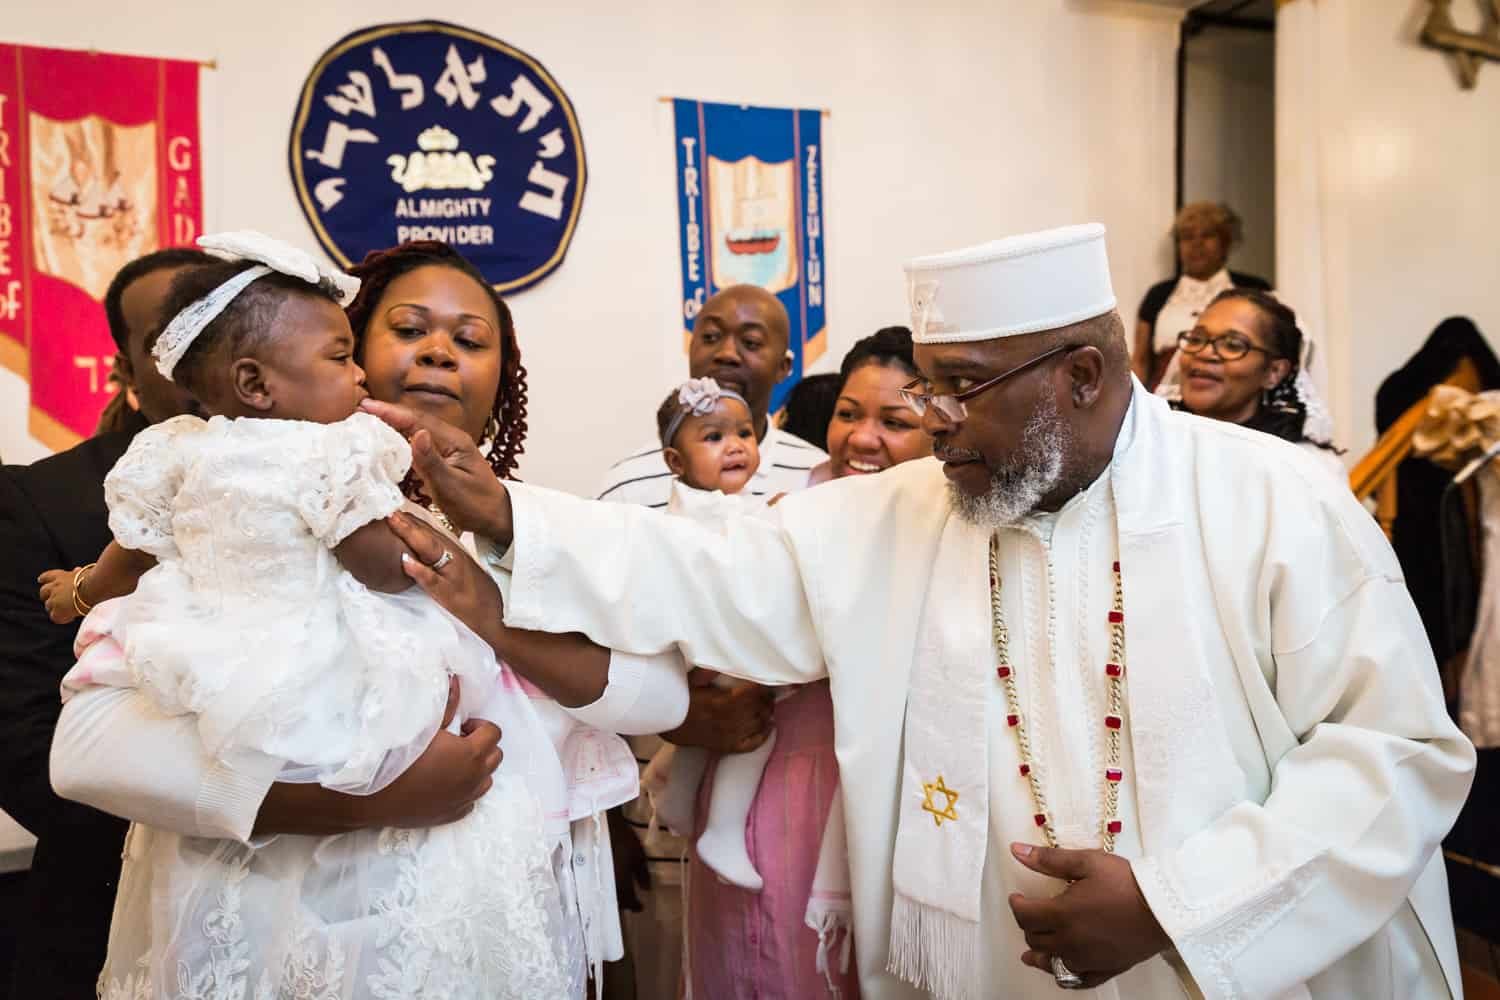 Pastor putting finger in baby's mouth during Jamaica christening